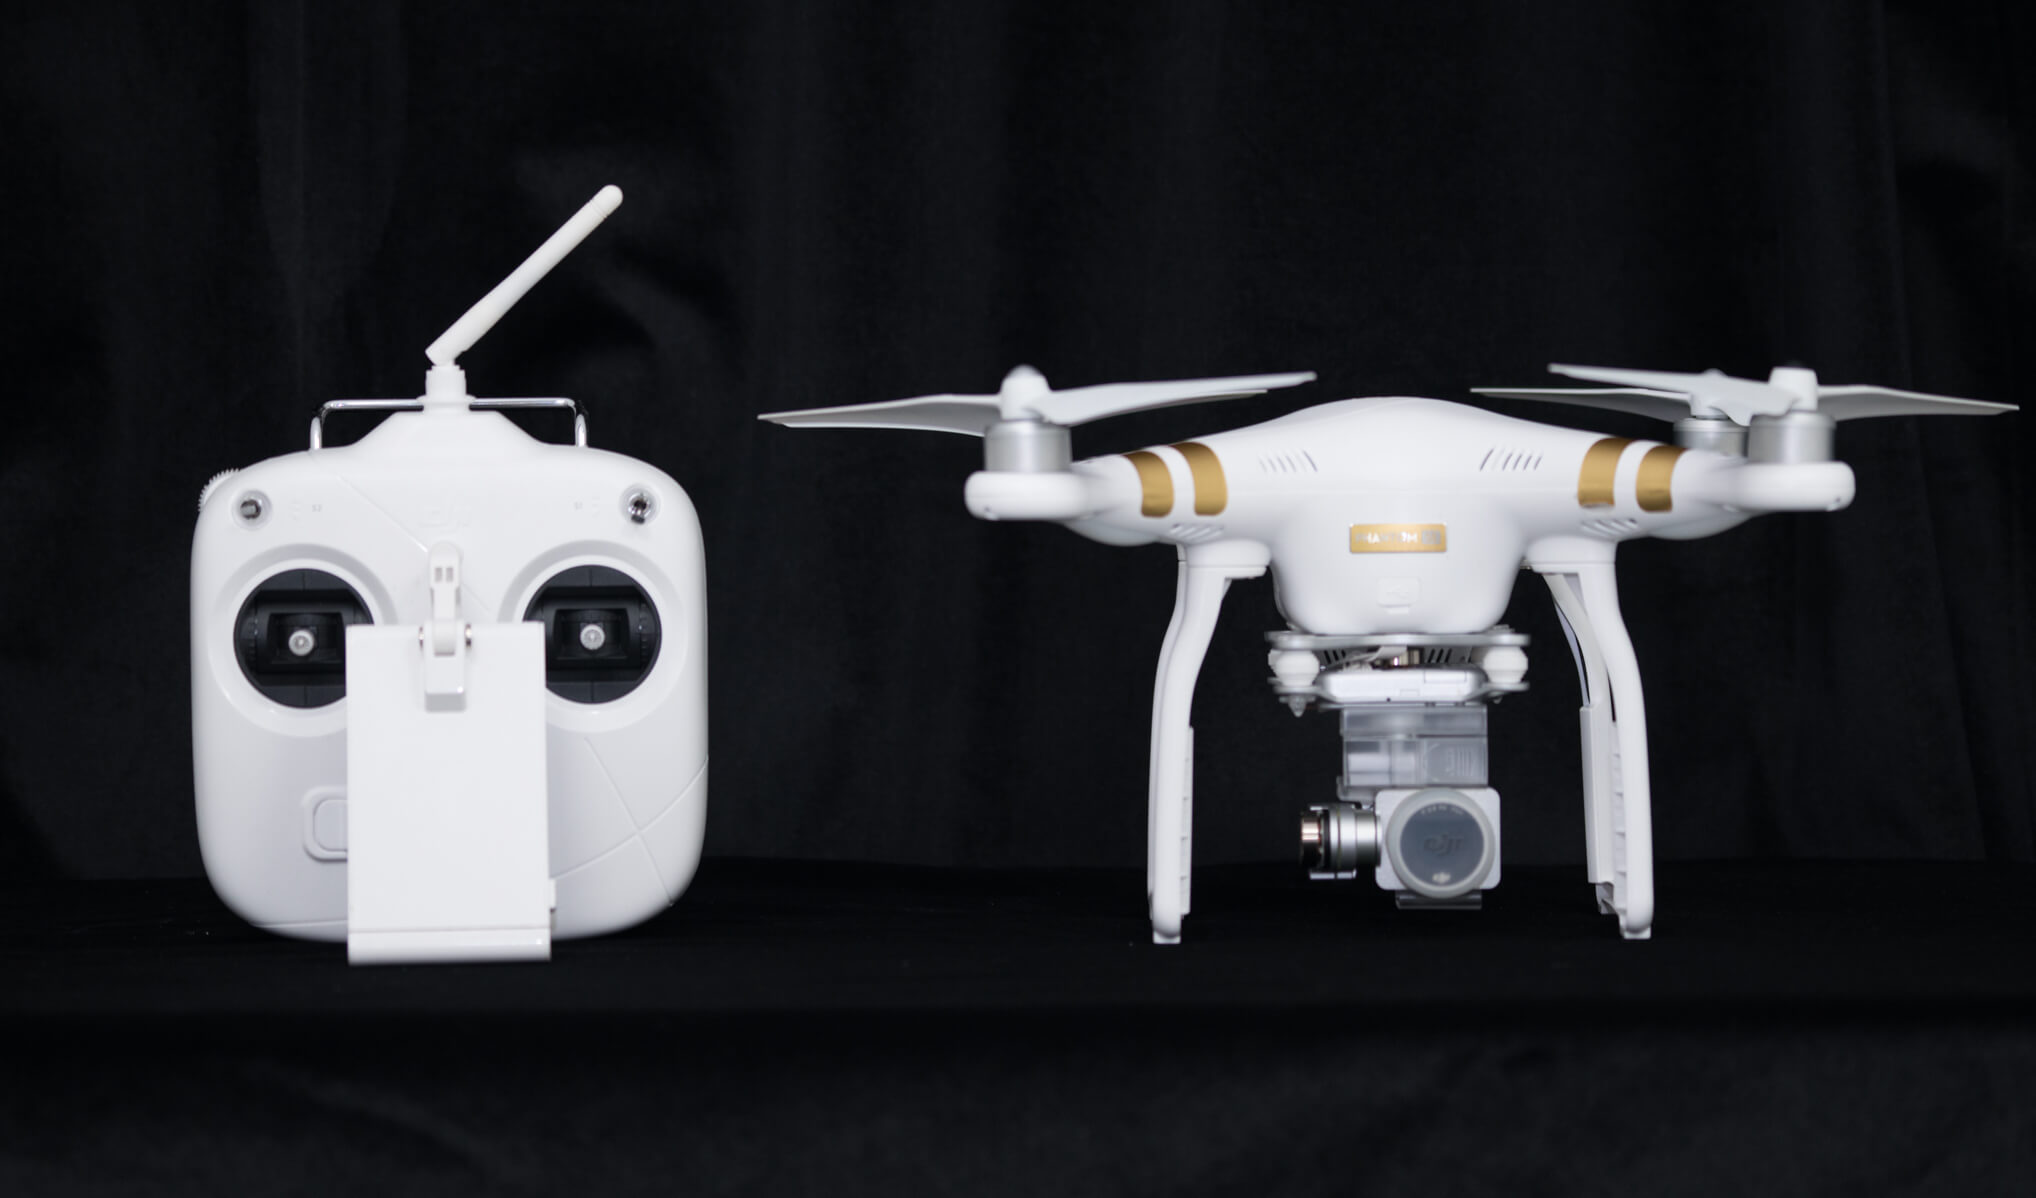 Dji Phantom 3 Se Unboxing Featuring A 4k Camera Dji Guides